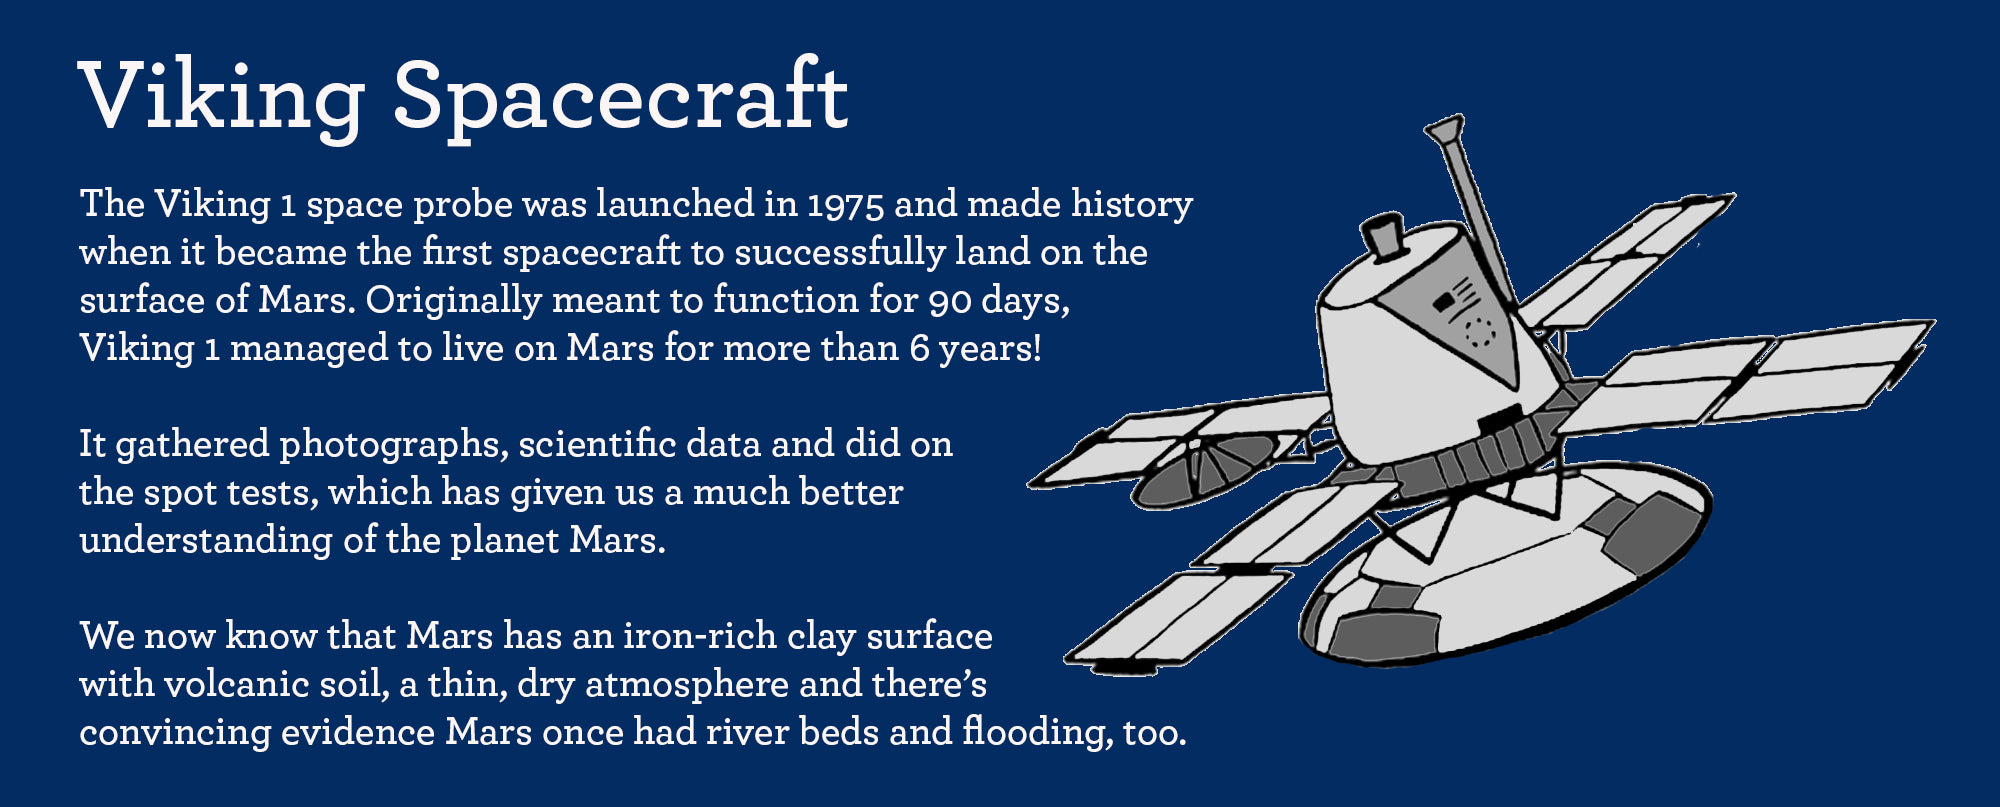 facts about viking 1 spacecraft